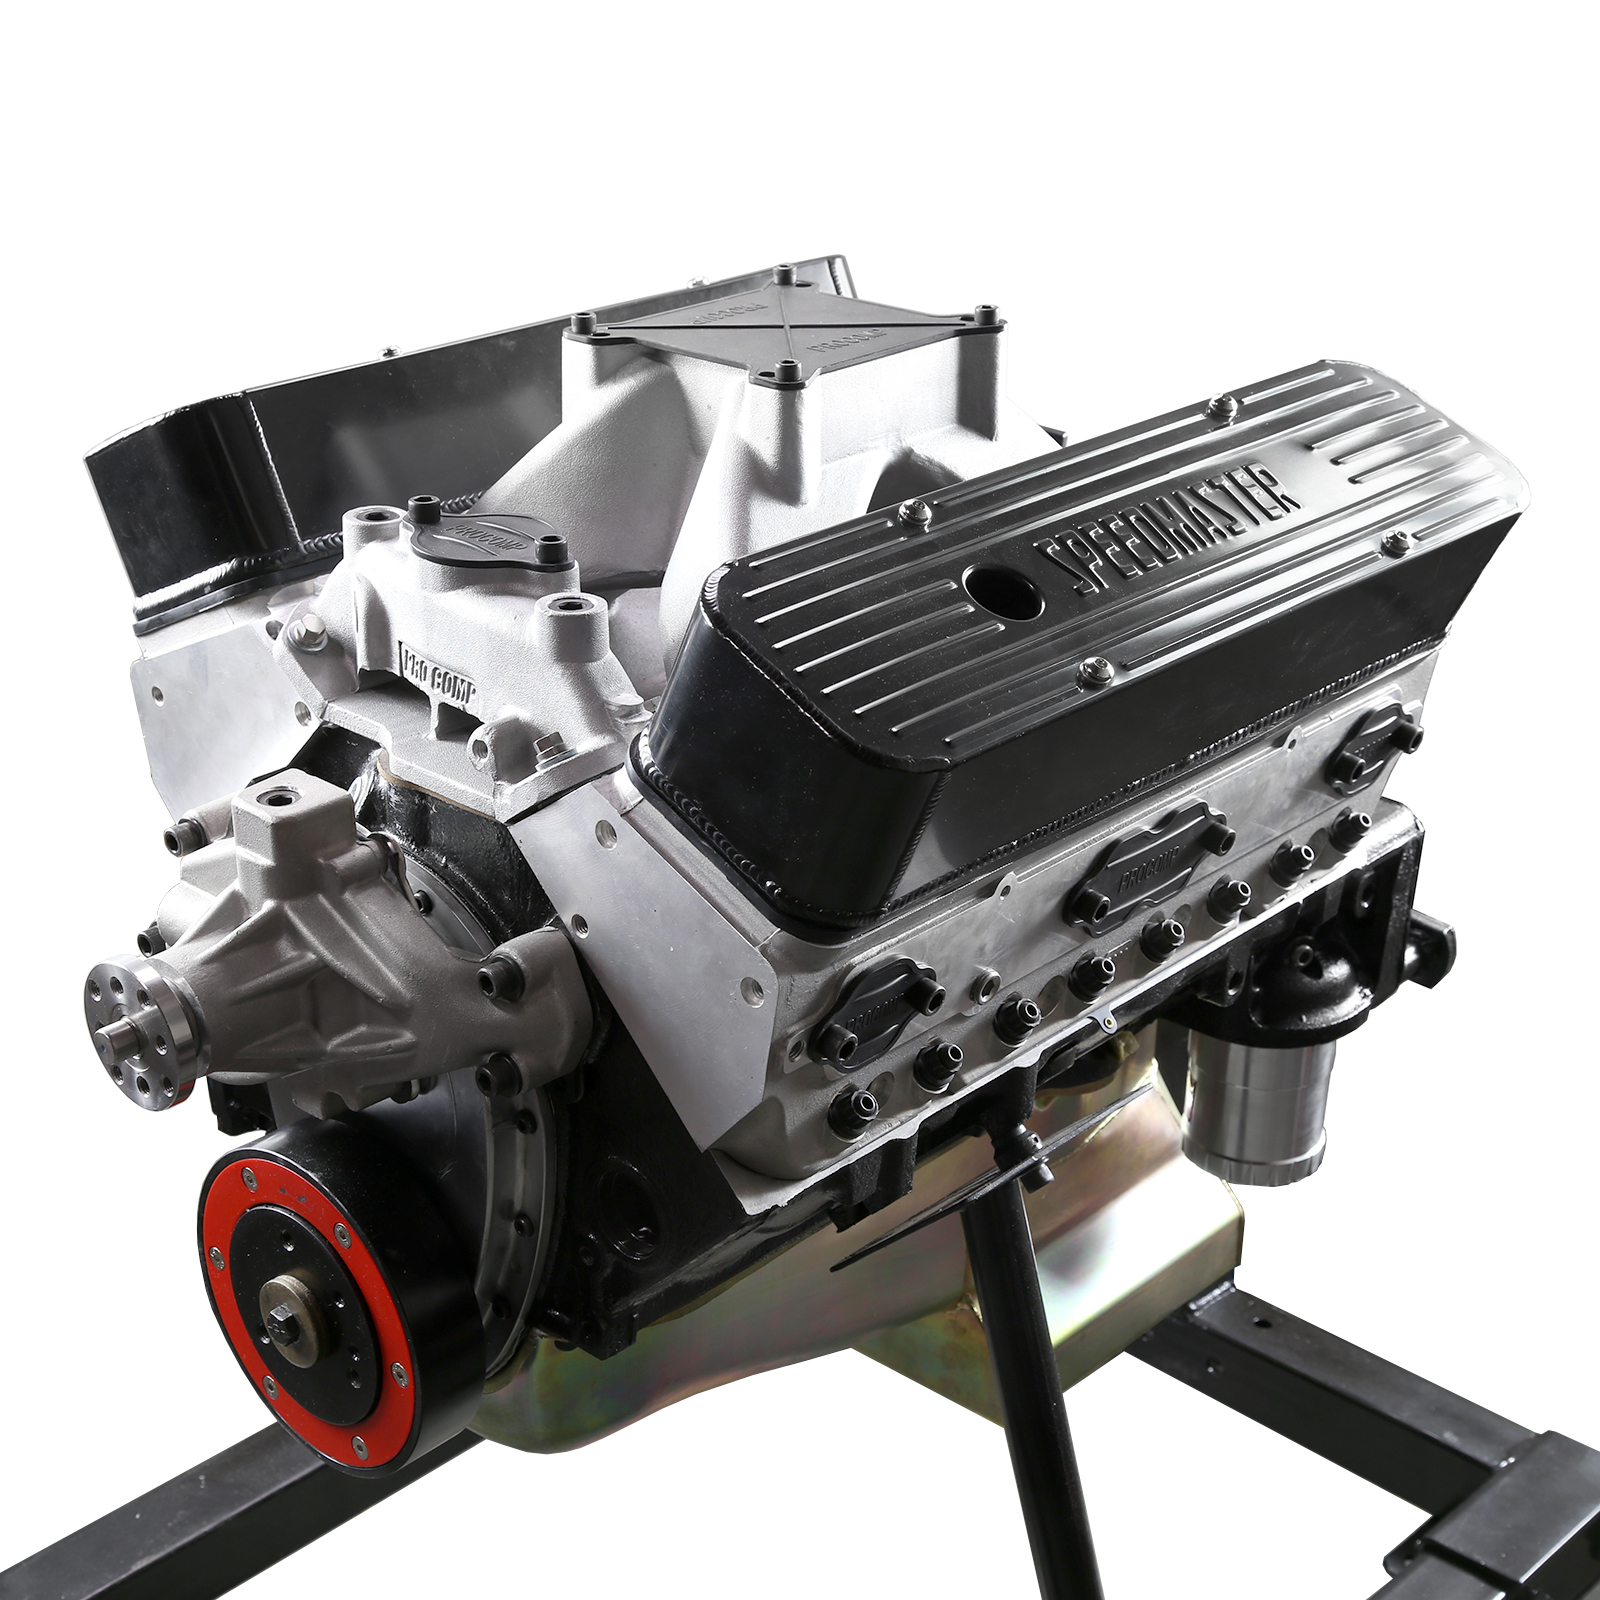 Chevy SBC 383 500Hp Forged Arsenal Cnc Aluminum Head Hyd. Roller Crate Engine